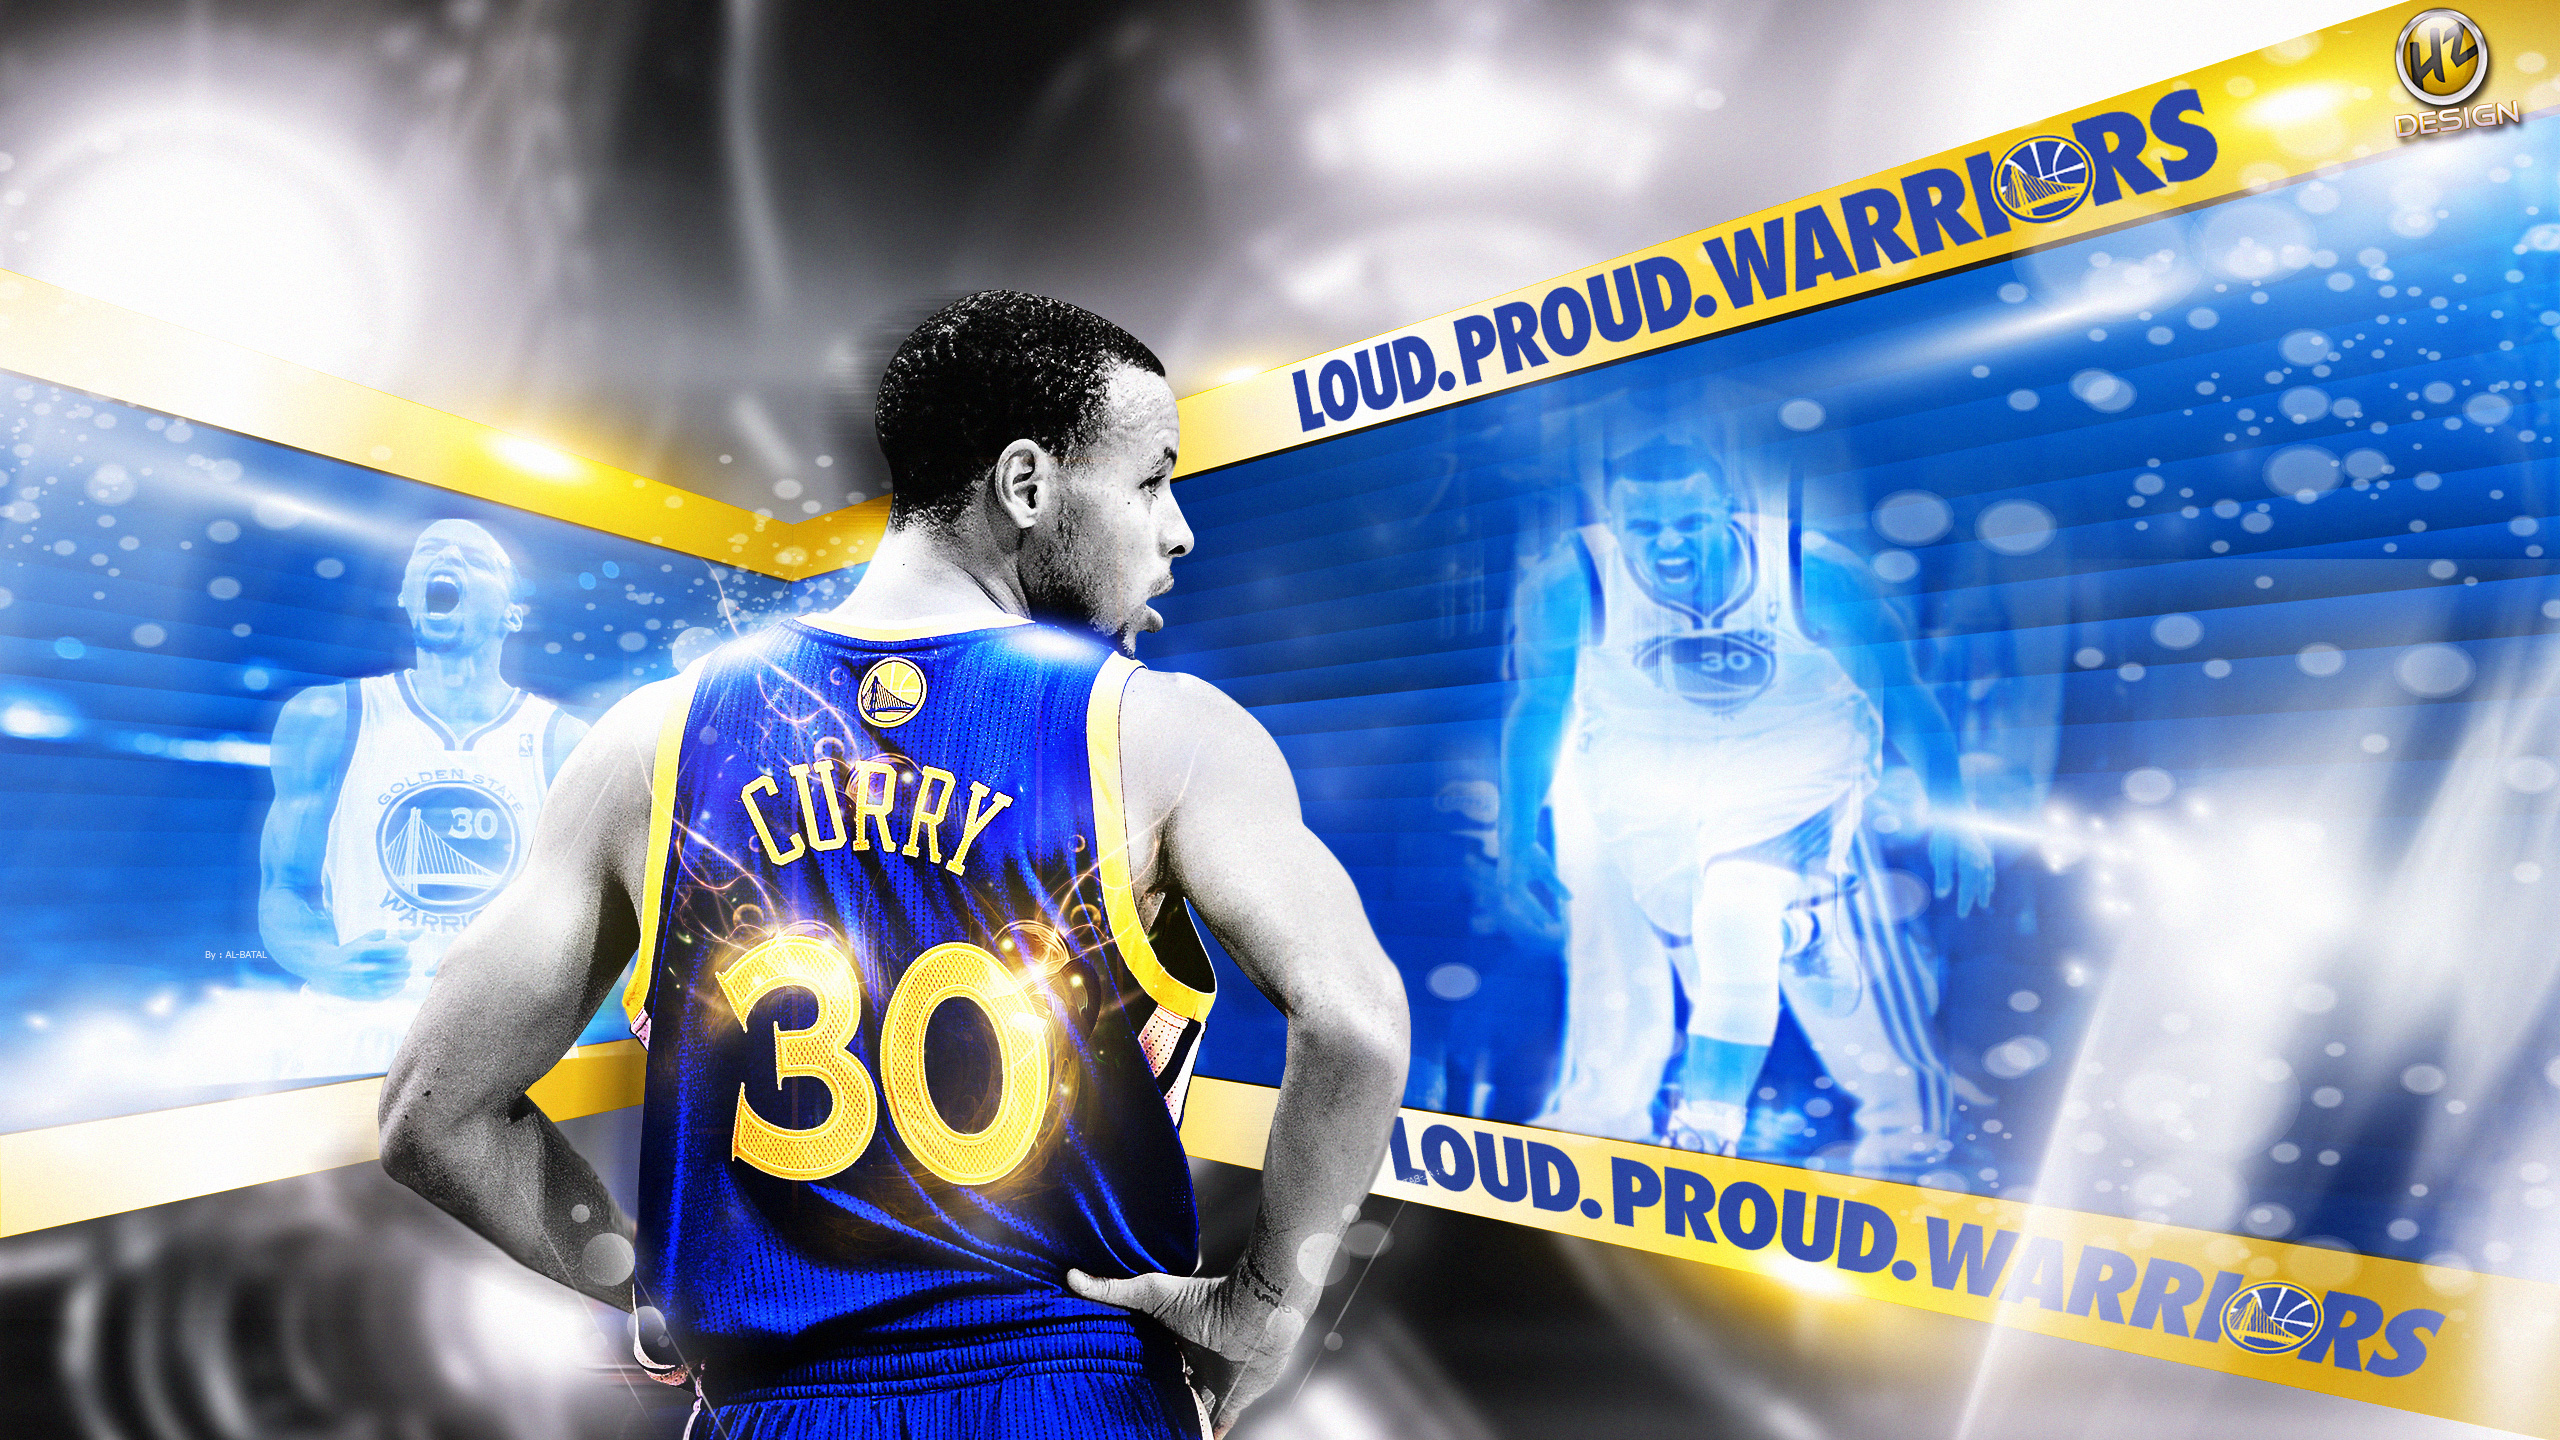 Stephen Curry 2014 Playoffs 25601440 Wallpaper 2560x1440